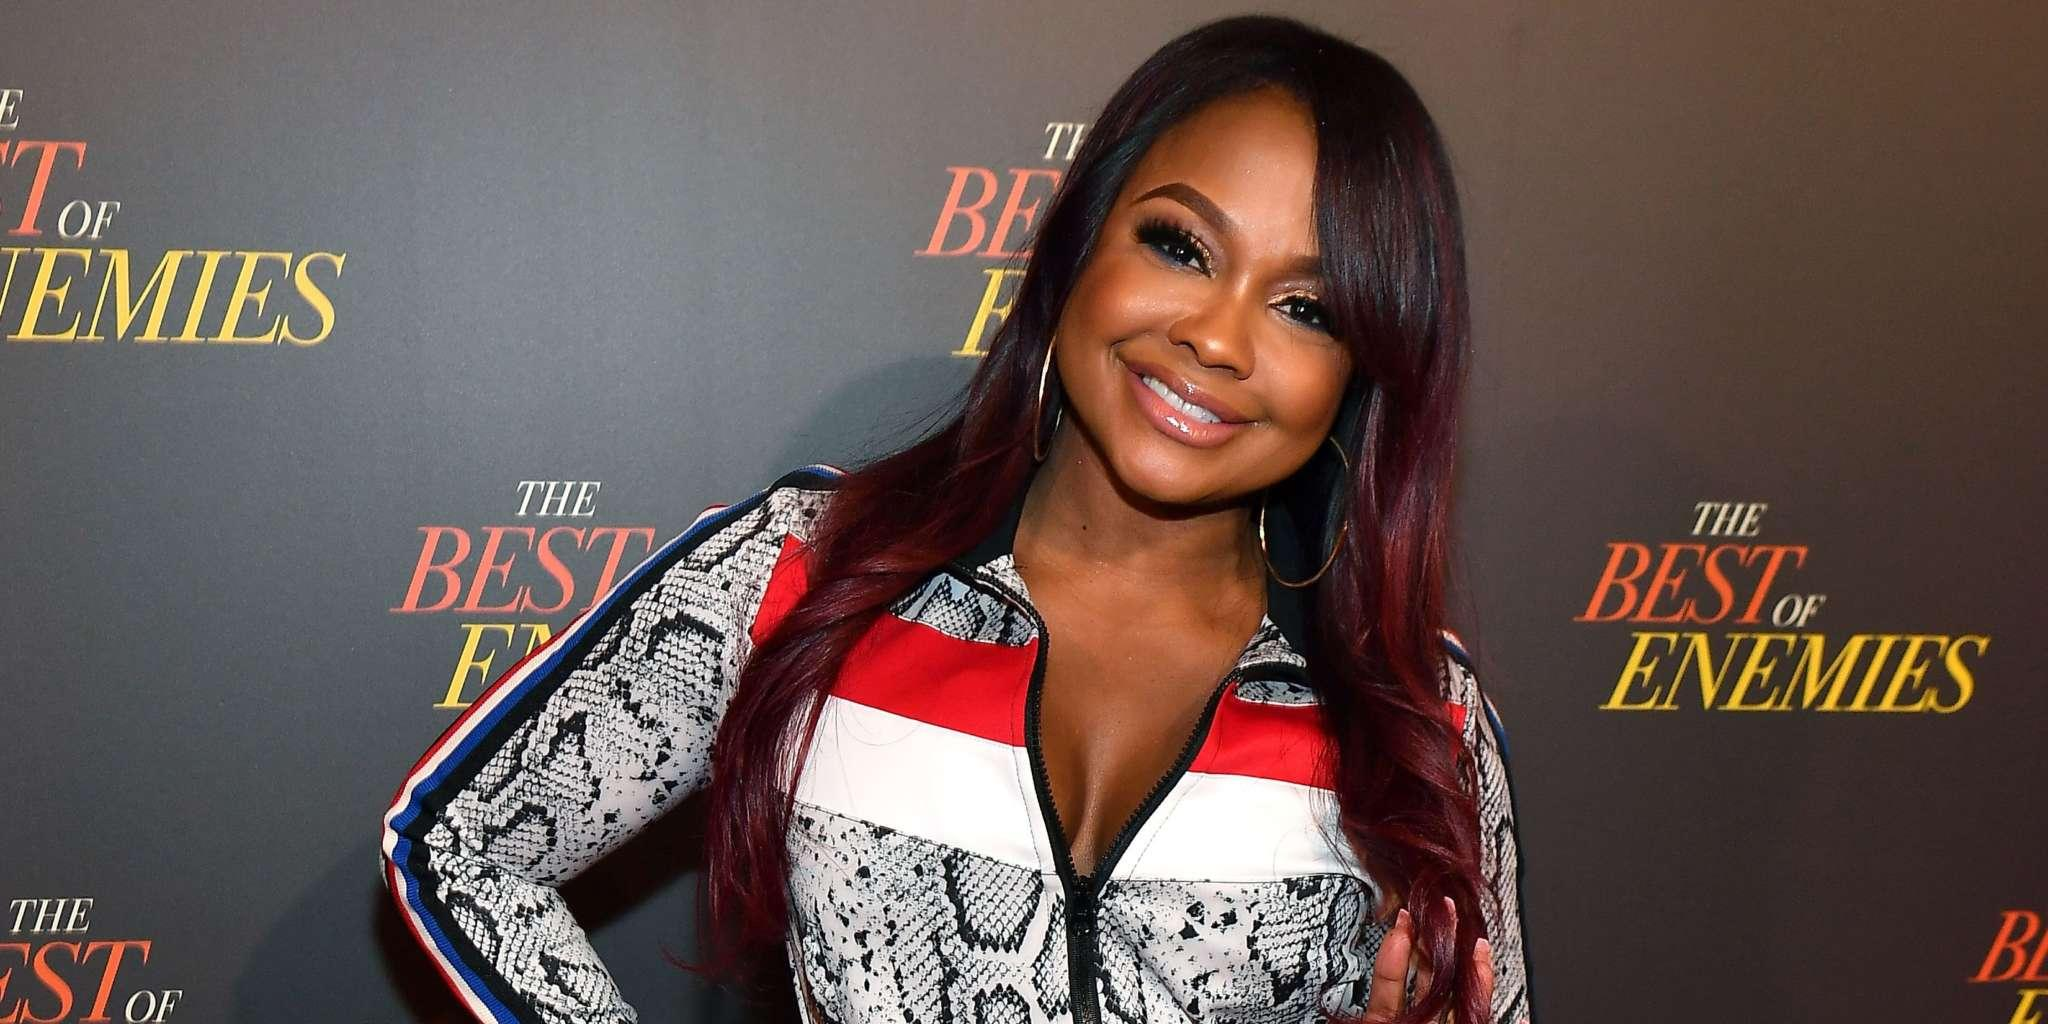 Phaedra Parks Praises Her Sons, Brothers And Dad - Check Out Her Strong Message